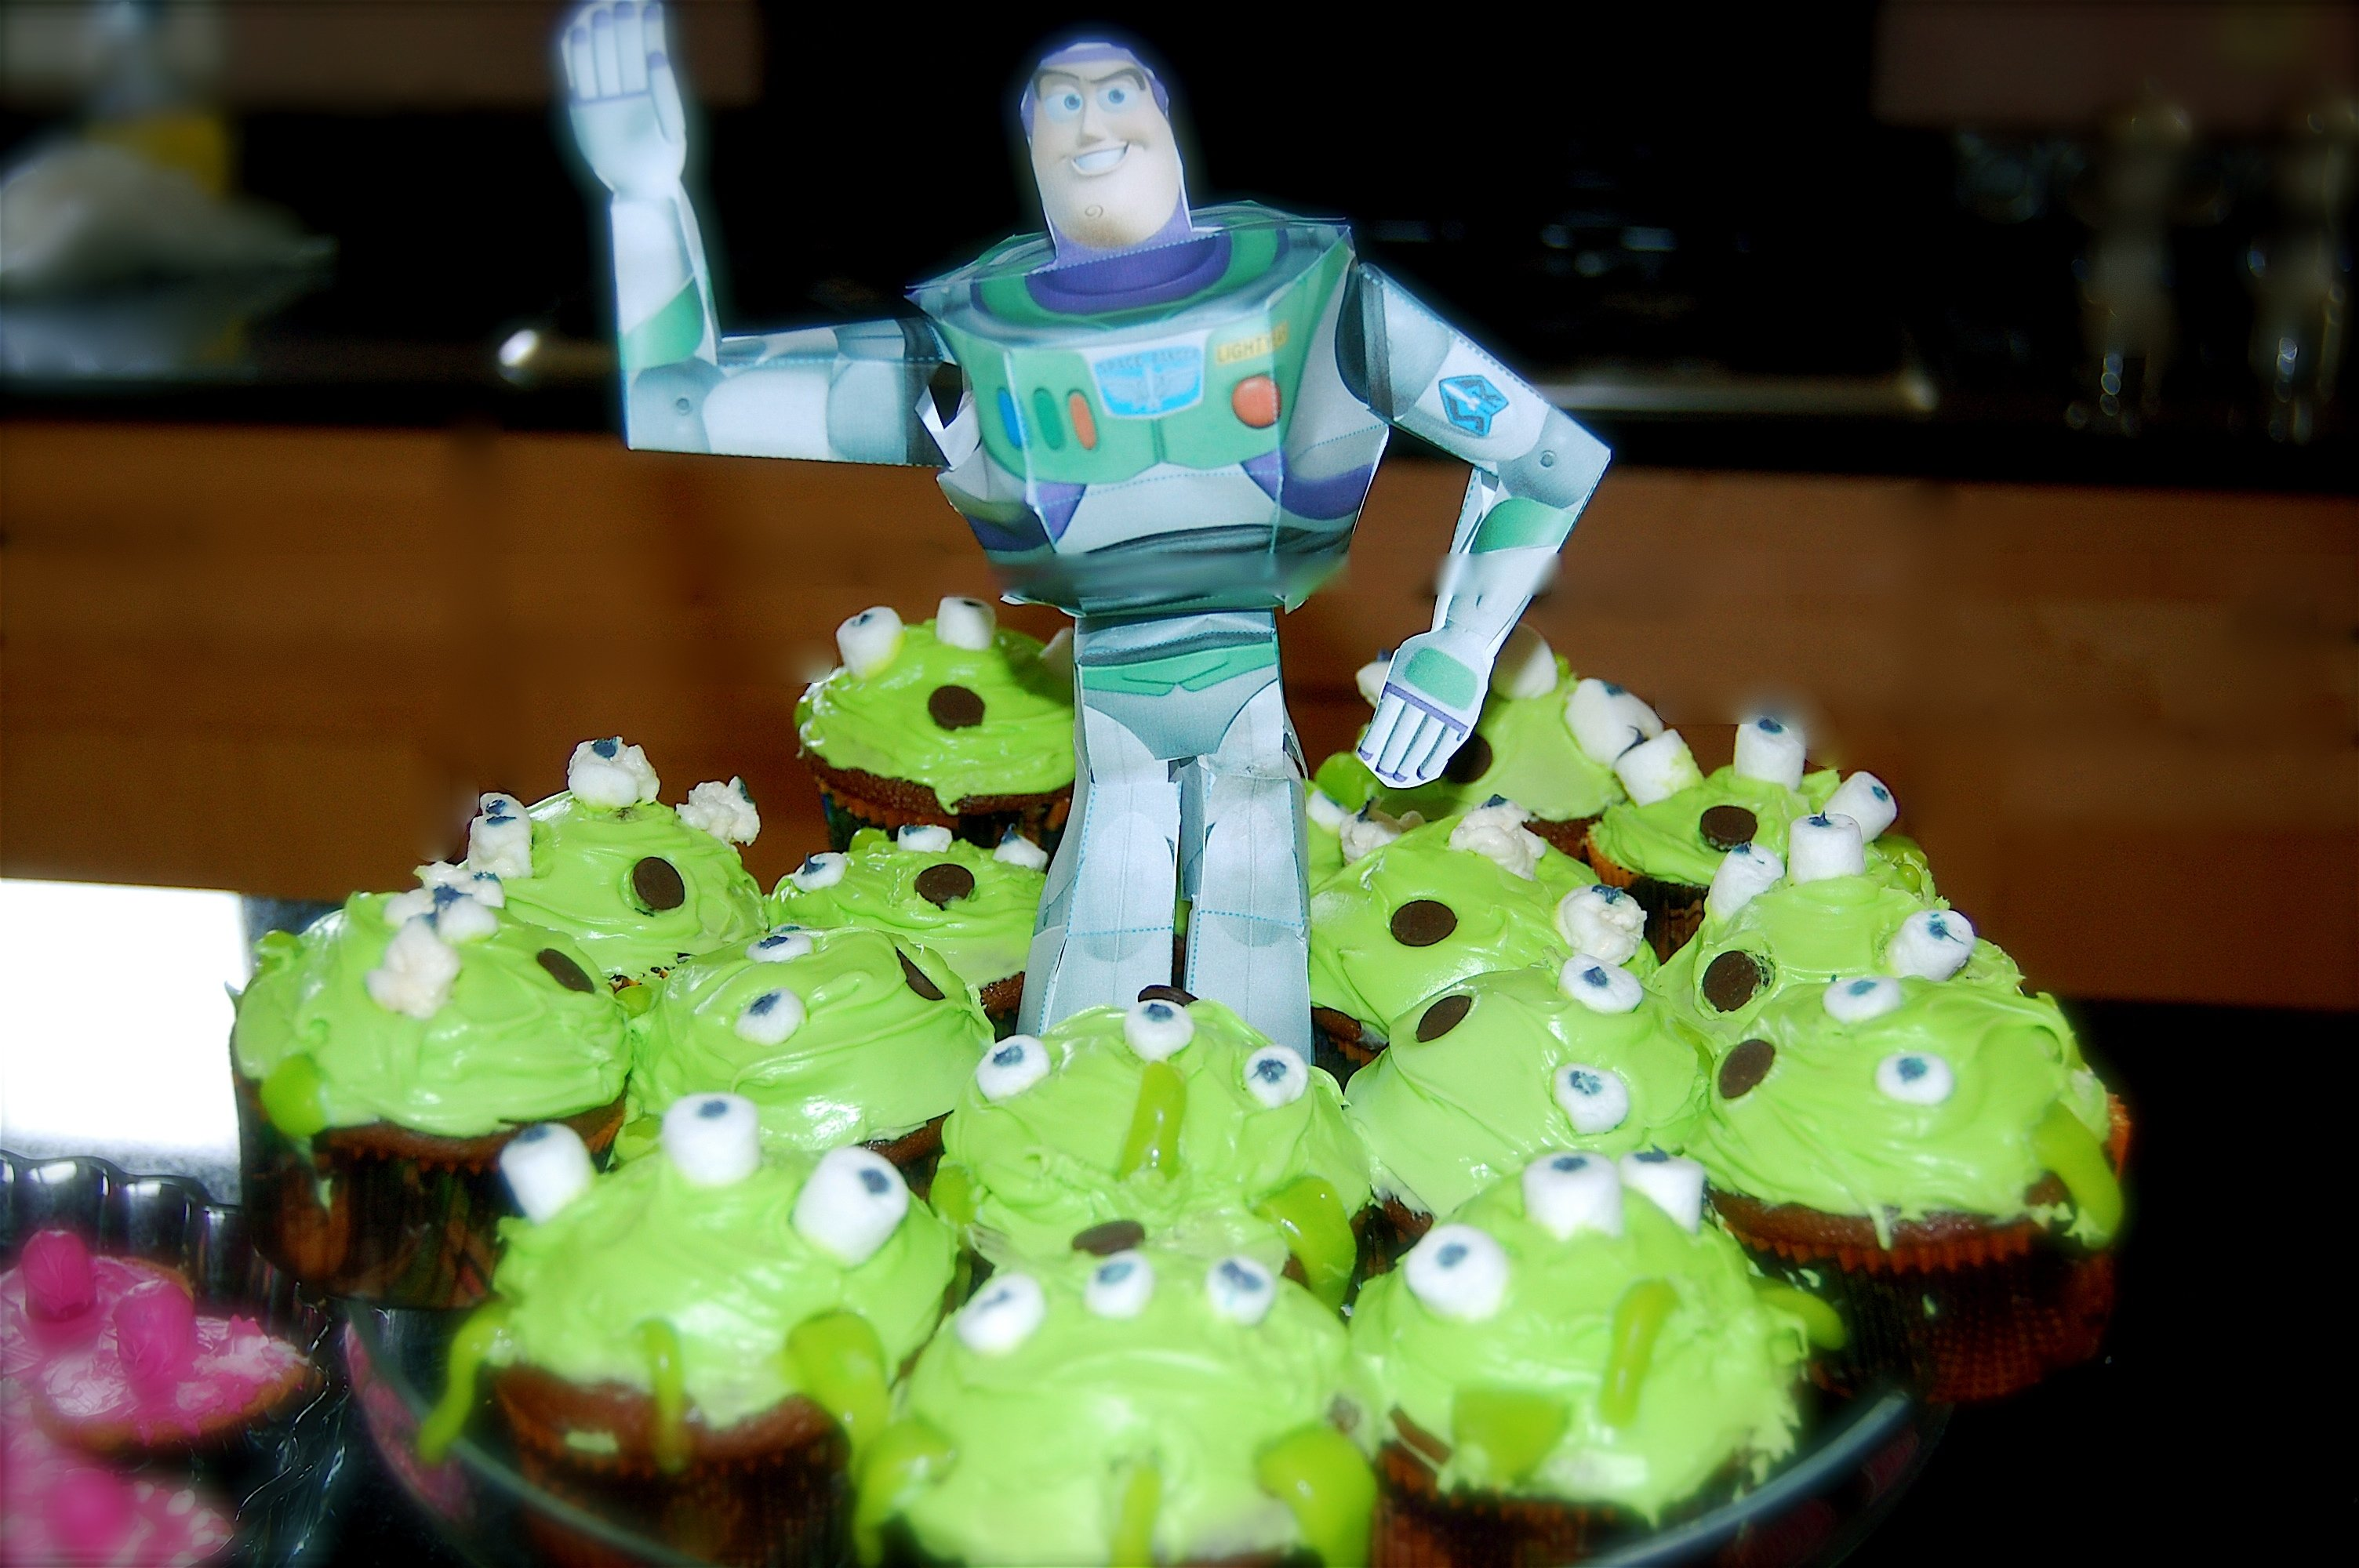 10 Most Recommended Buzz Lightyear Birthday Party Ideas yeehaw toy story birthday party ideas cupcake cuties baking blog